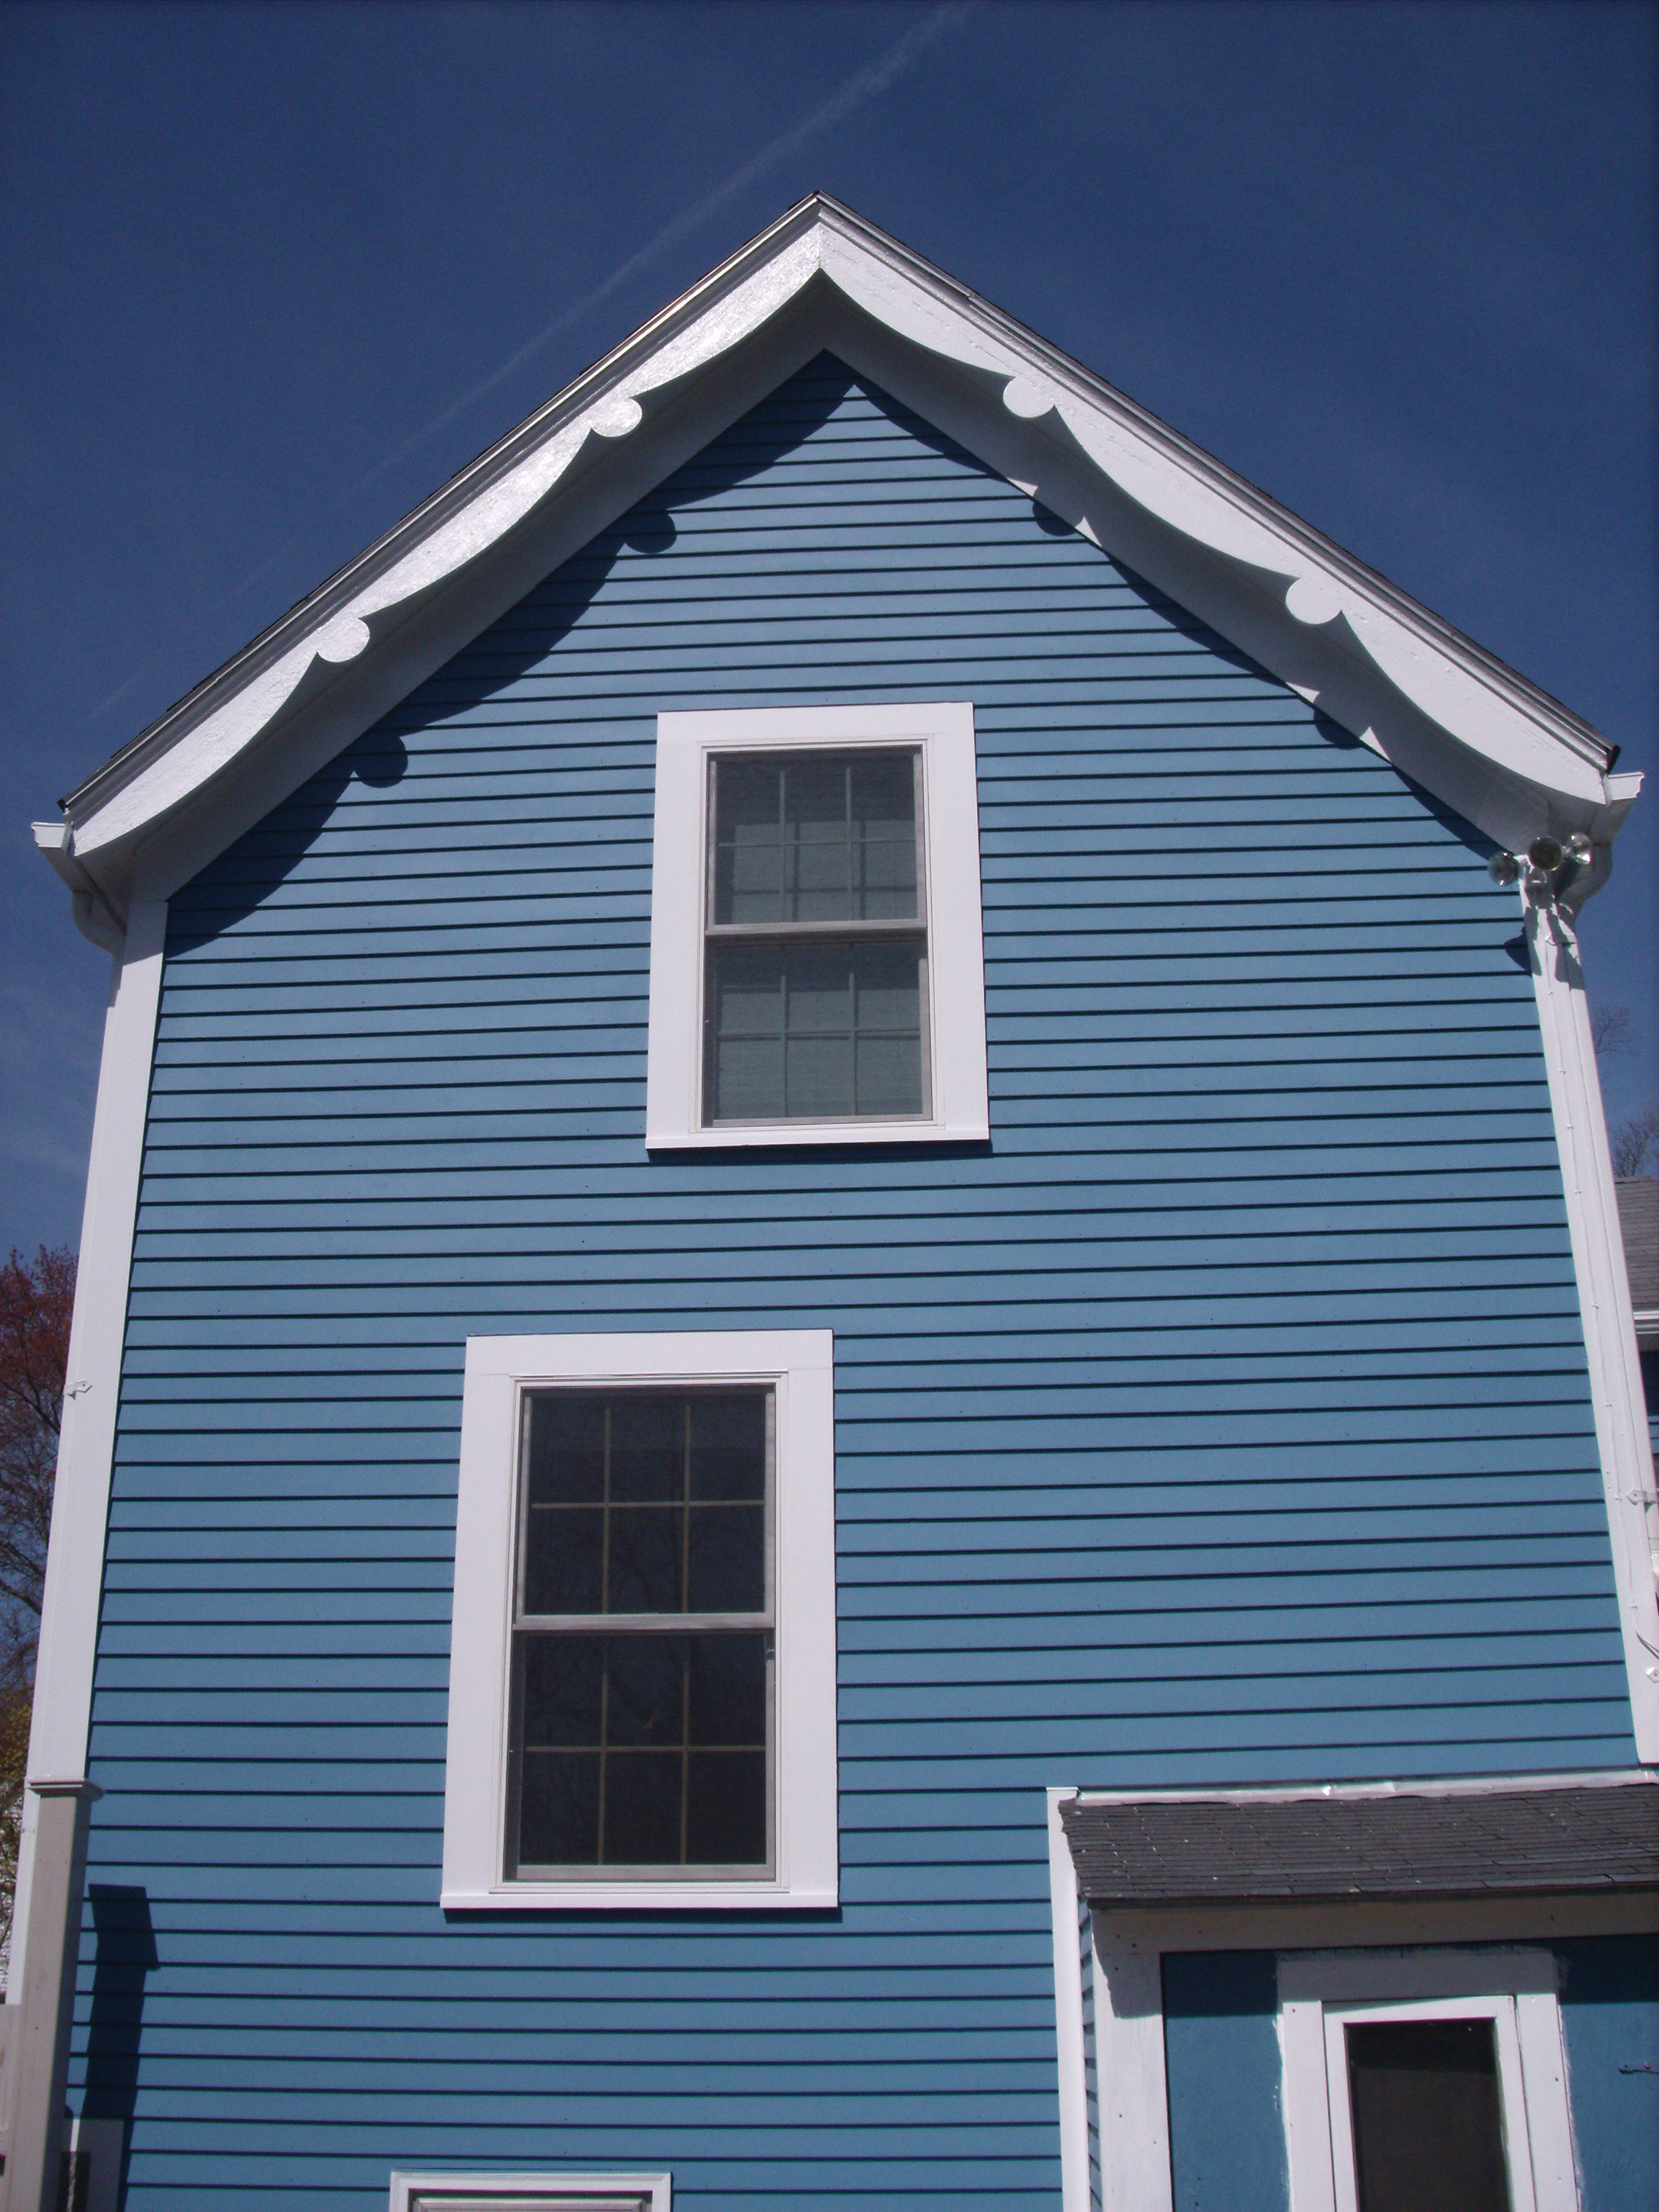 Siding-Replaced-with-Wood-Siding-and-Painted-Renovation-by-Franca-Services-Your-Home-Renewal-Experts-Serving-Boston